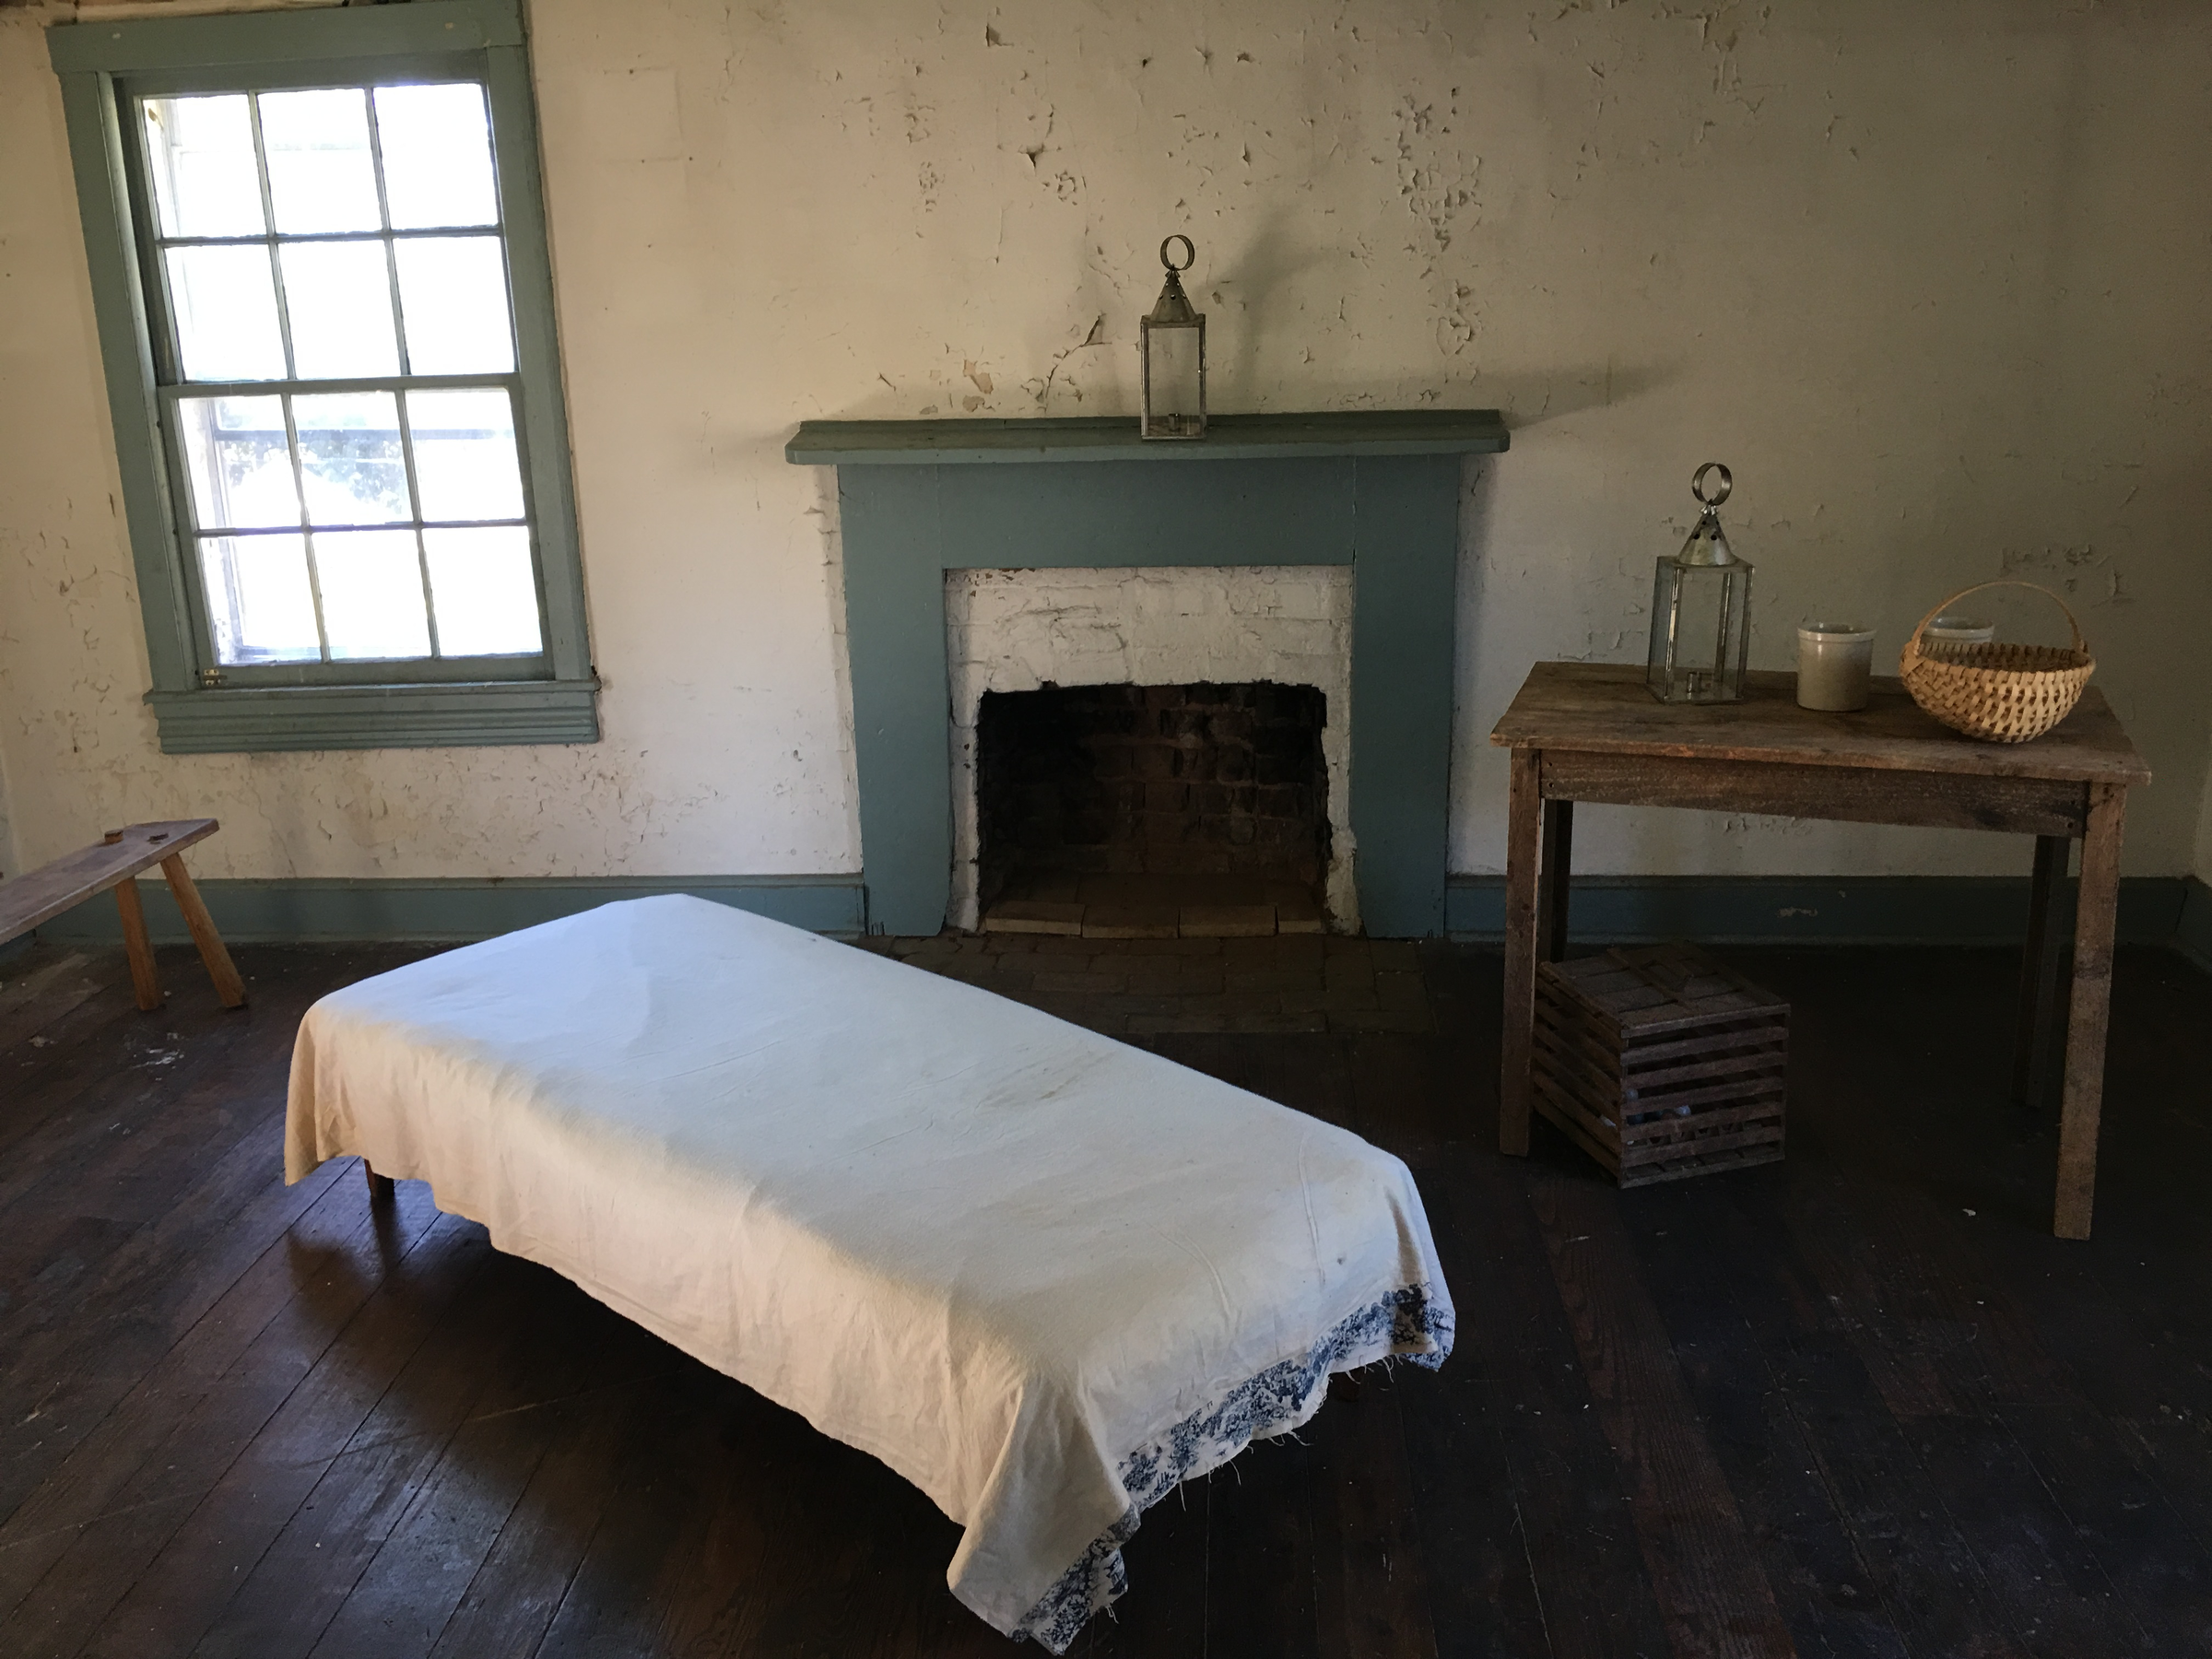 The Upper Floor Of Monterey Dwellings. As Part Of A Capstone Course, RC  Students Are Working With Professionals To Restore The Site To Its Original  State.